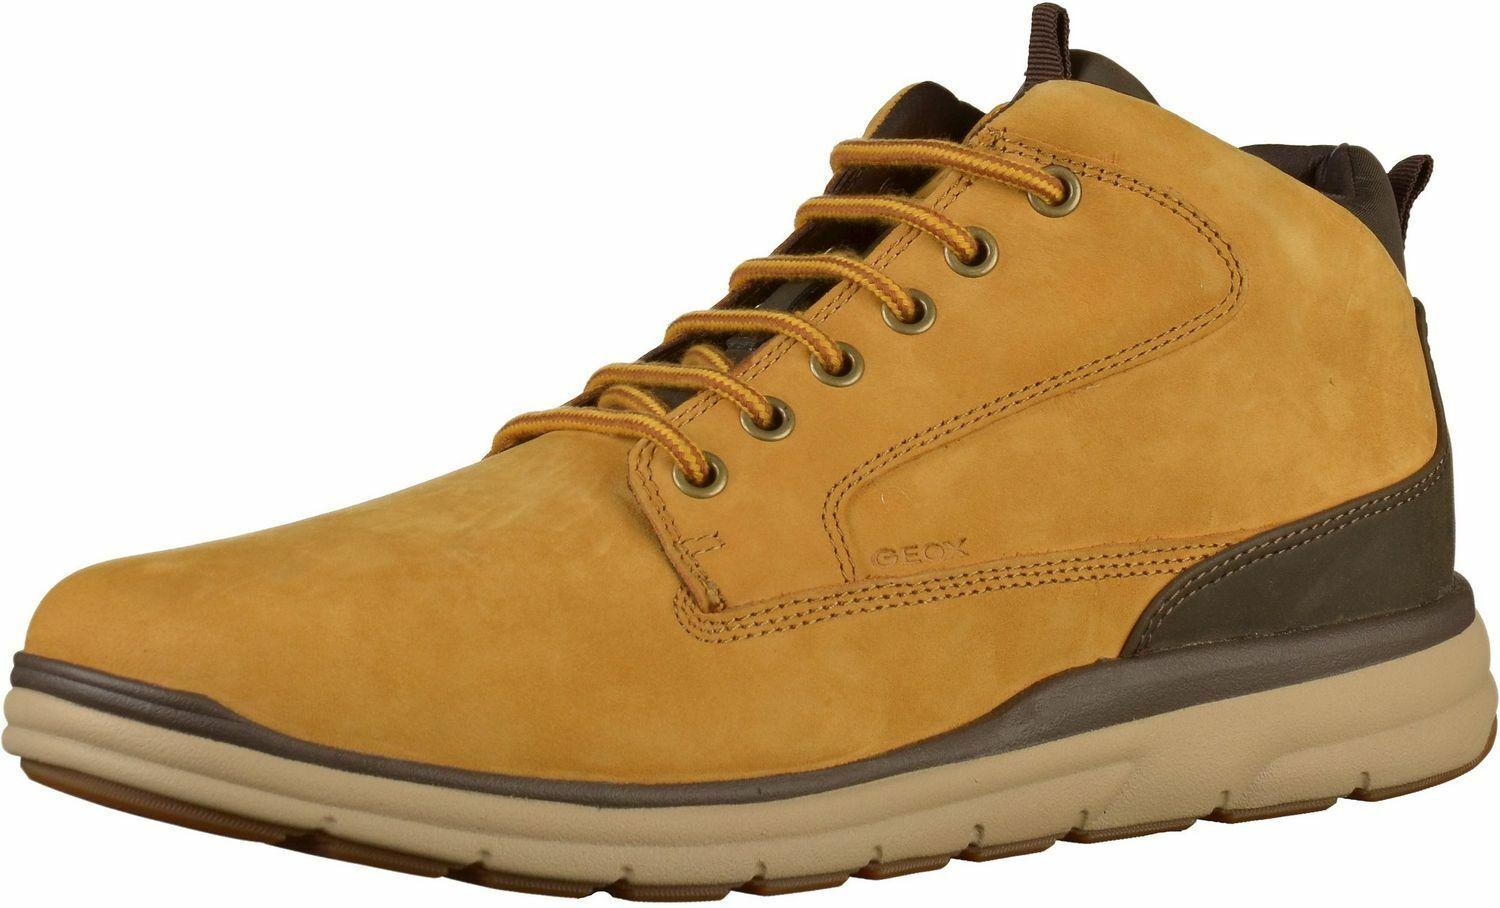 Geox Men Hallson a Chukka Boots Lace up Boots shoes U845UA Yellow Dk Coffee